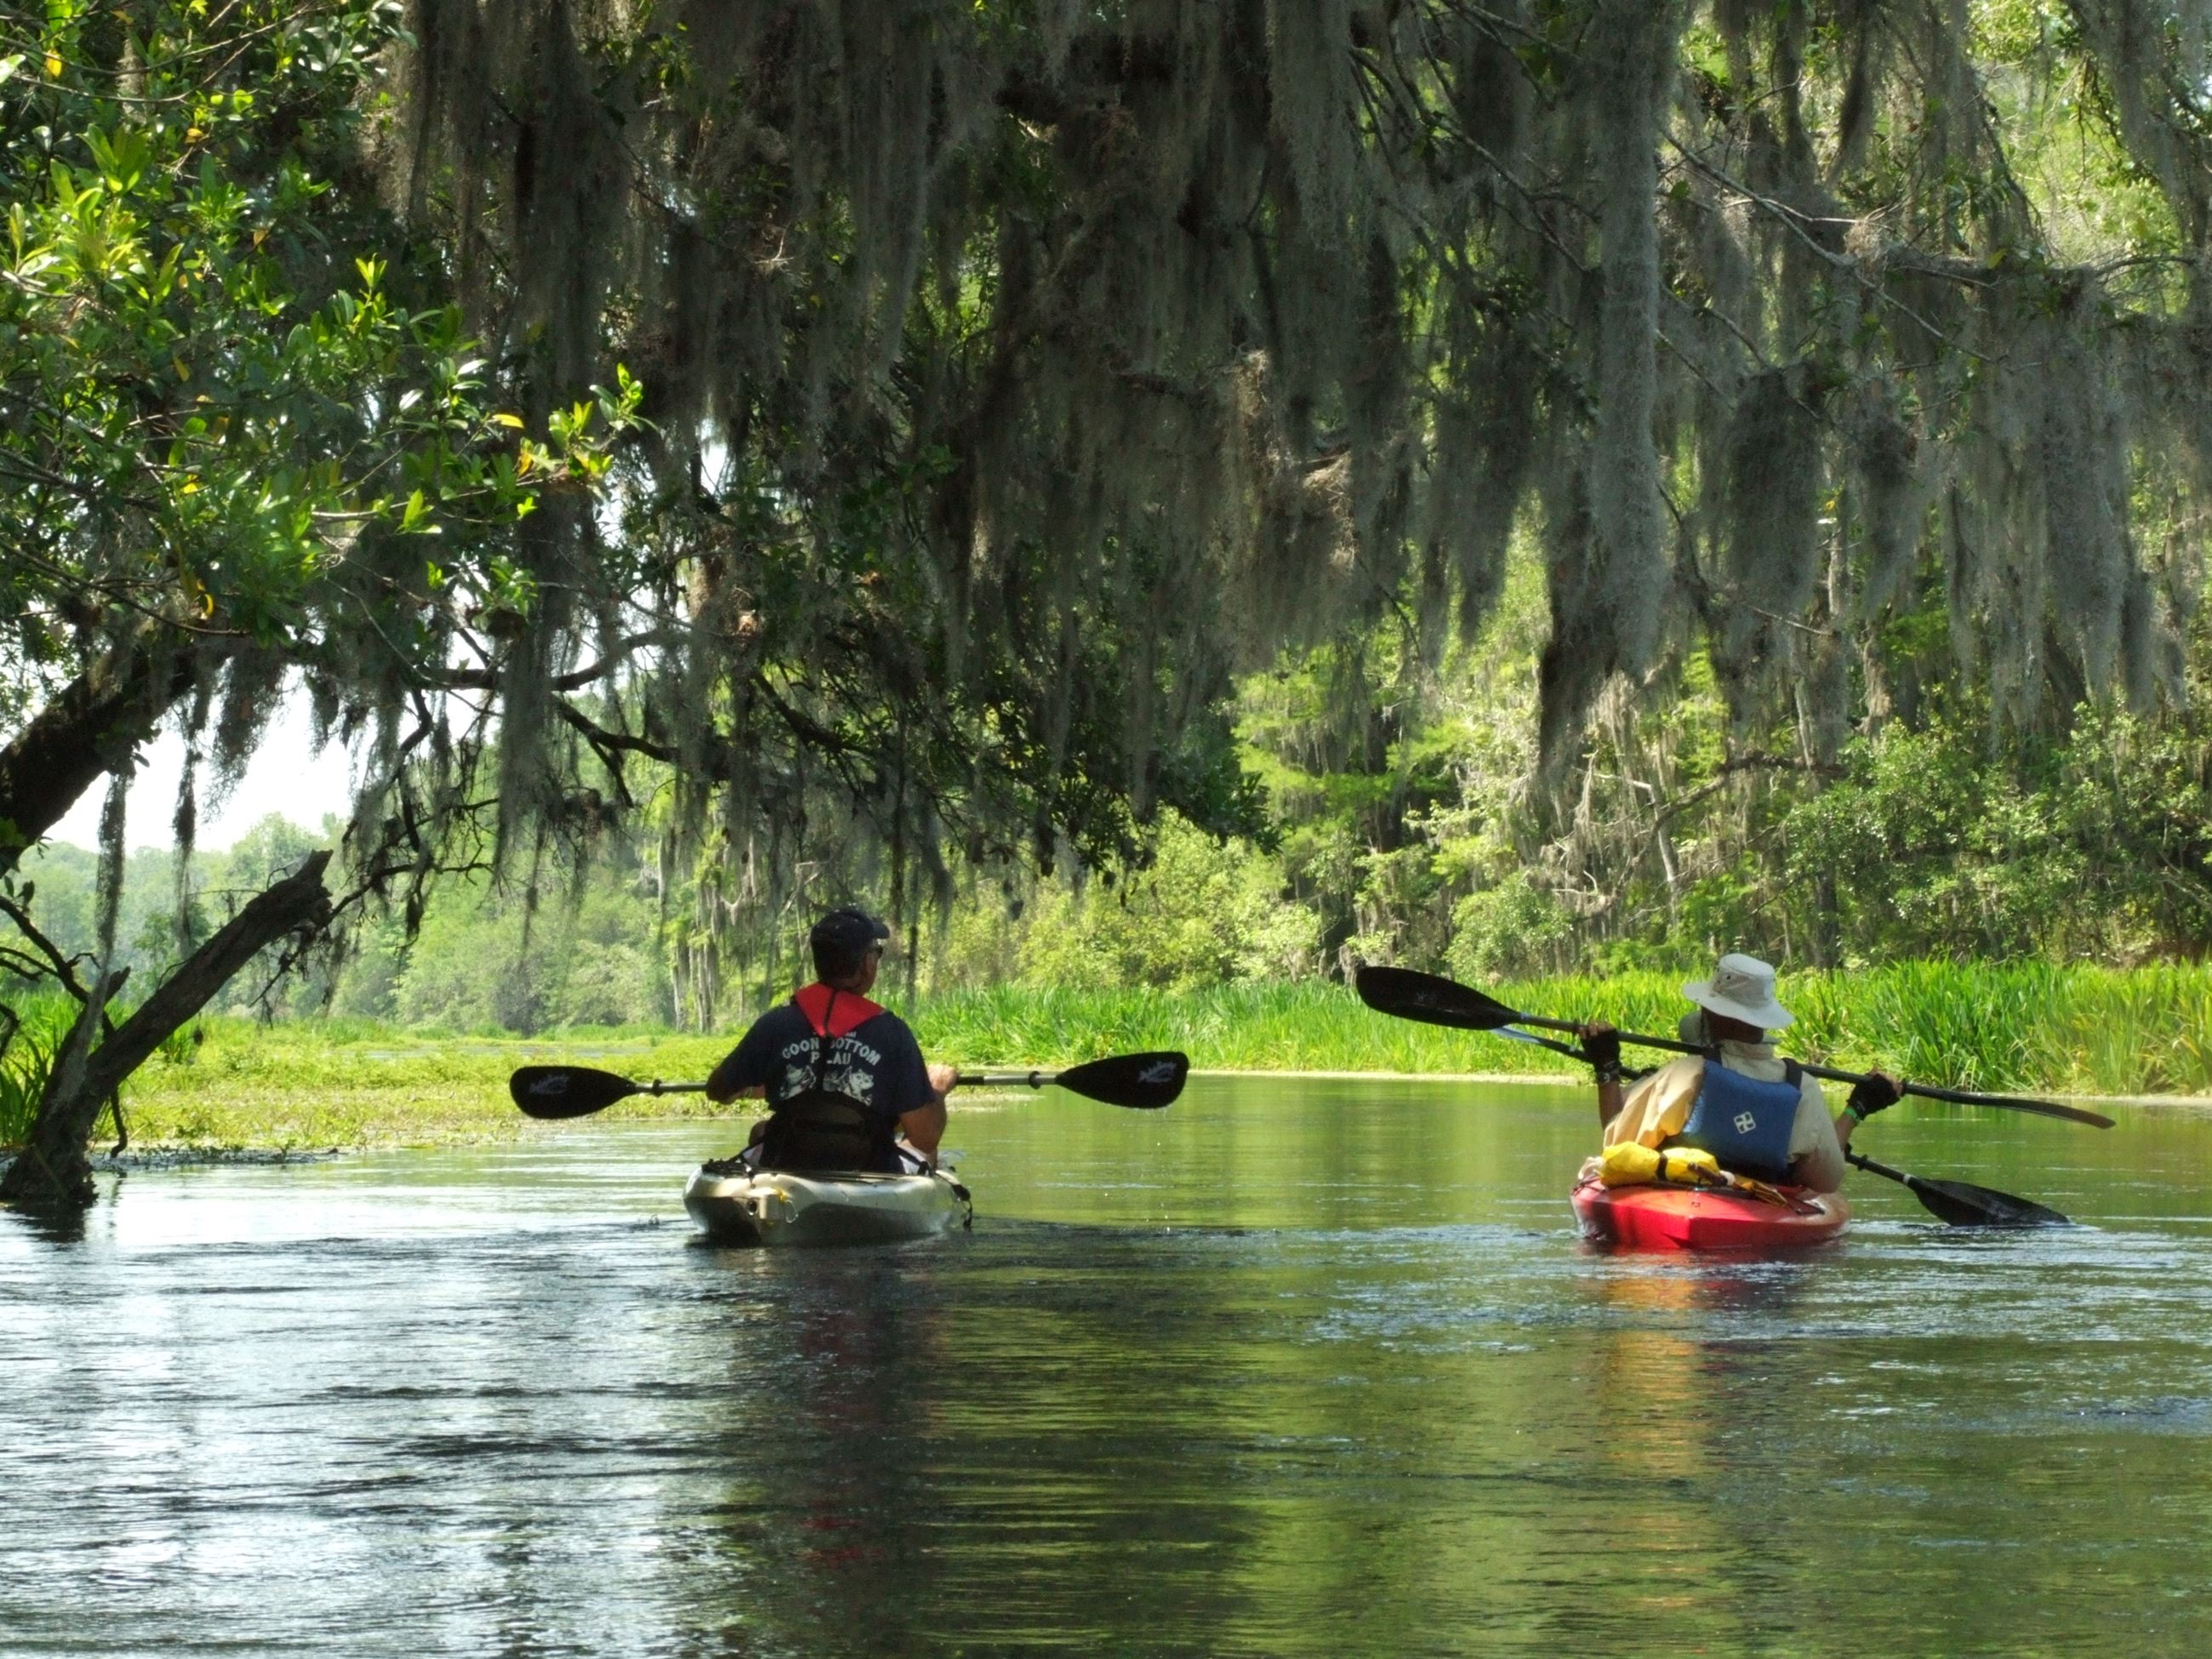 Kayakers paddling a river shaded by trees